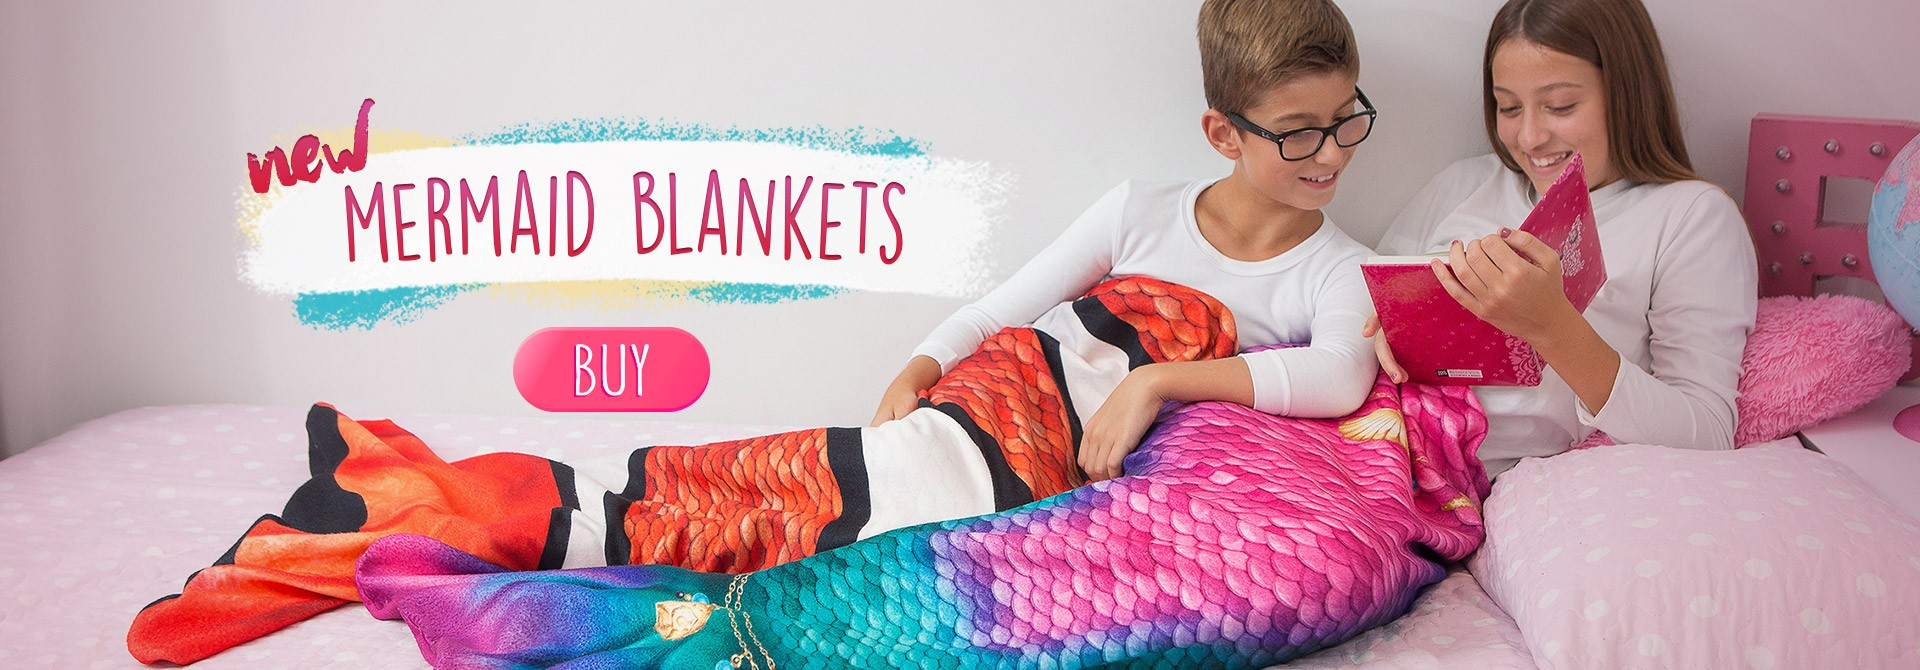 Mermaid shark blankets